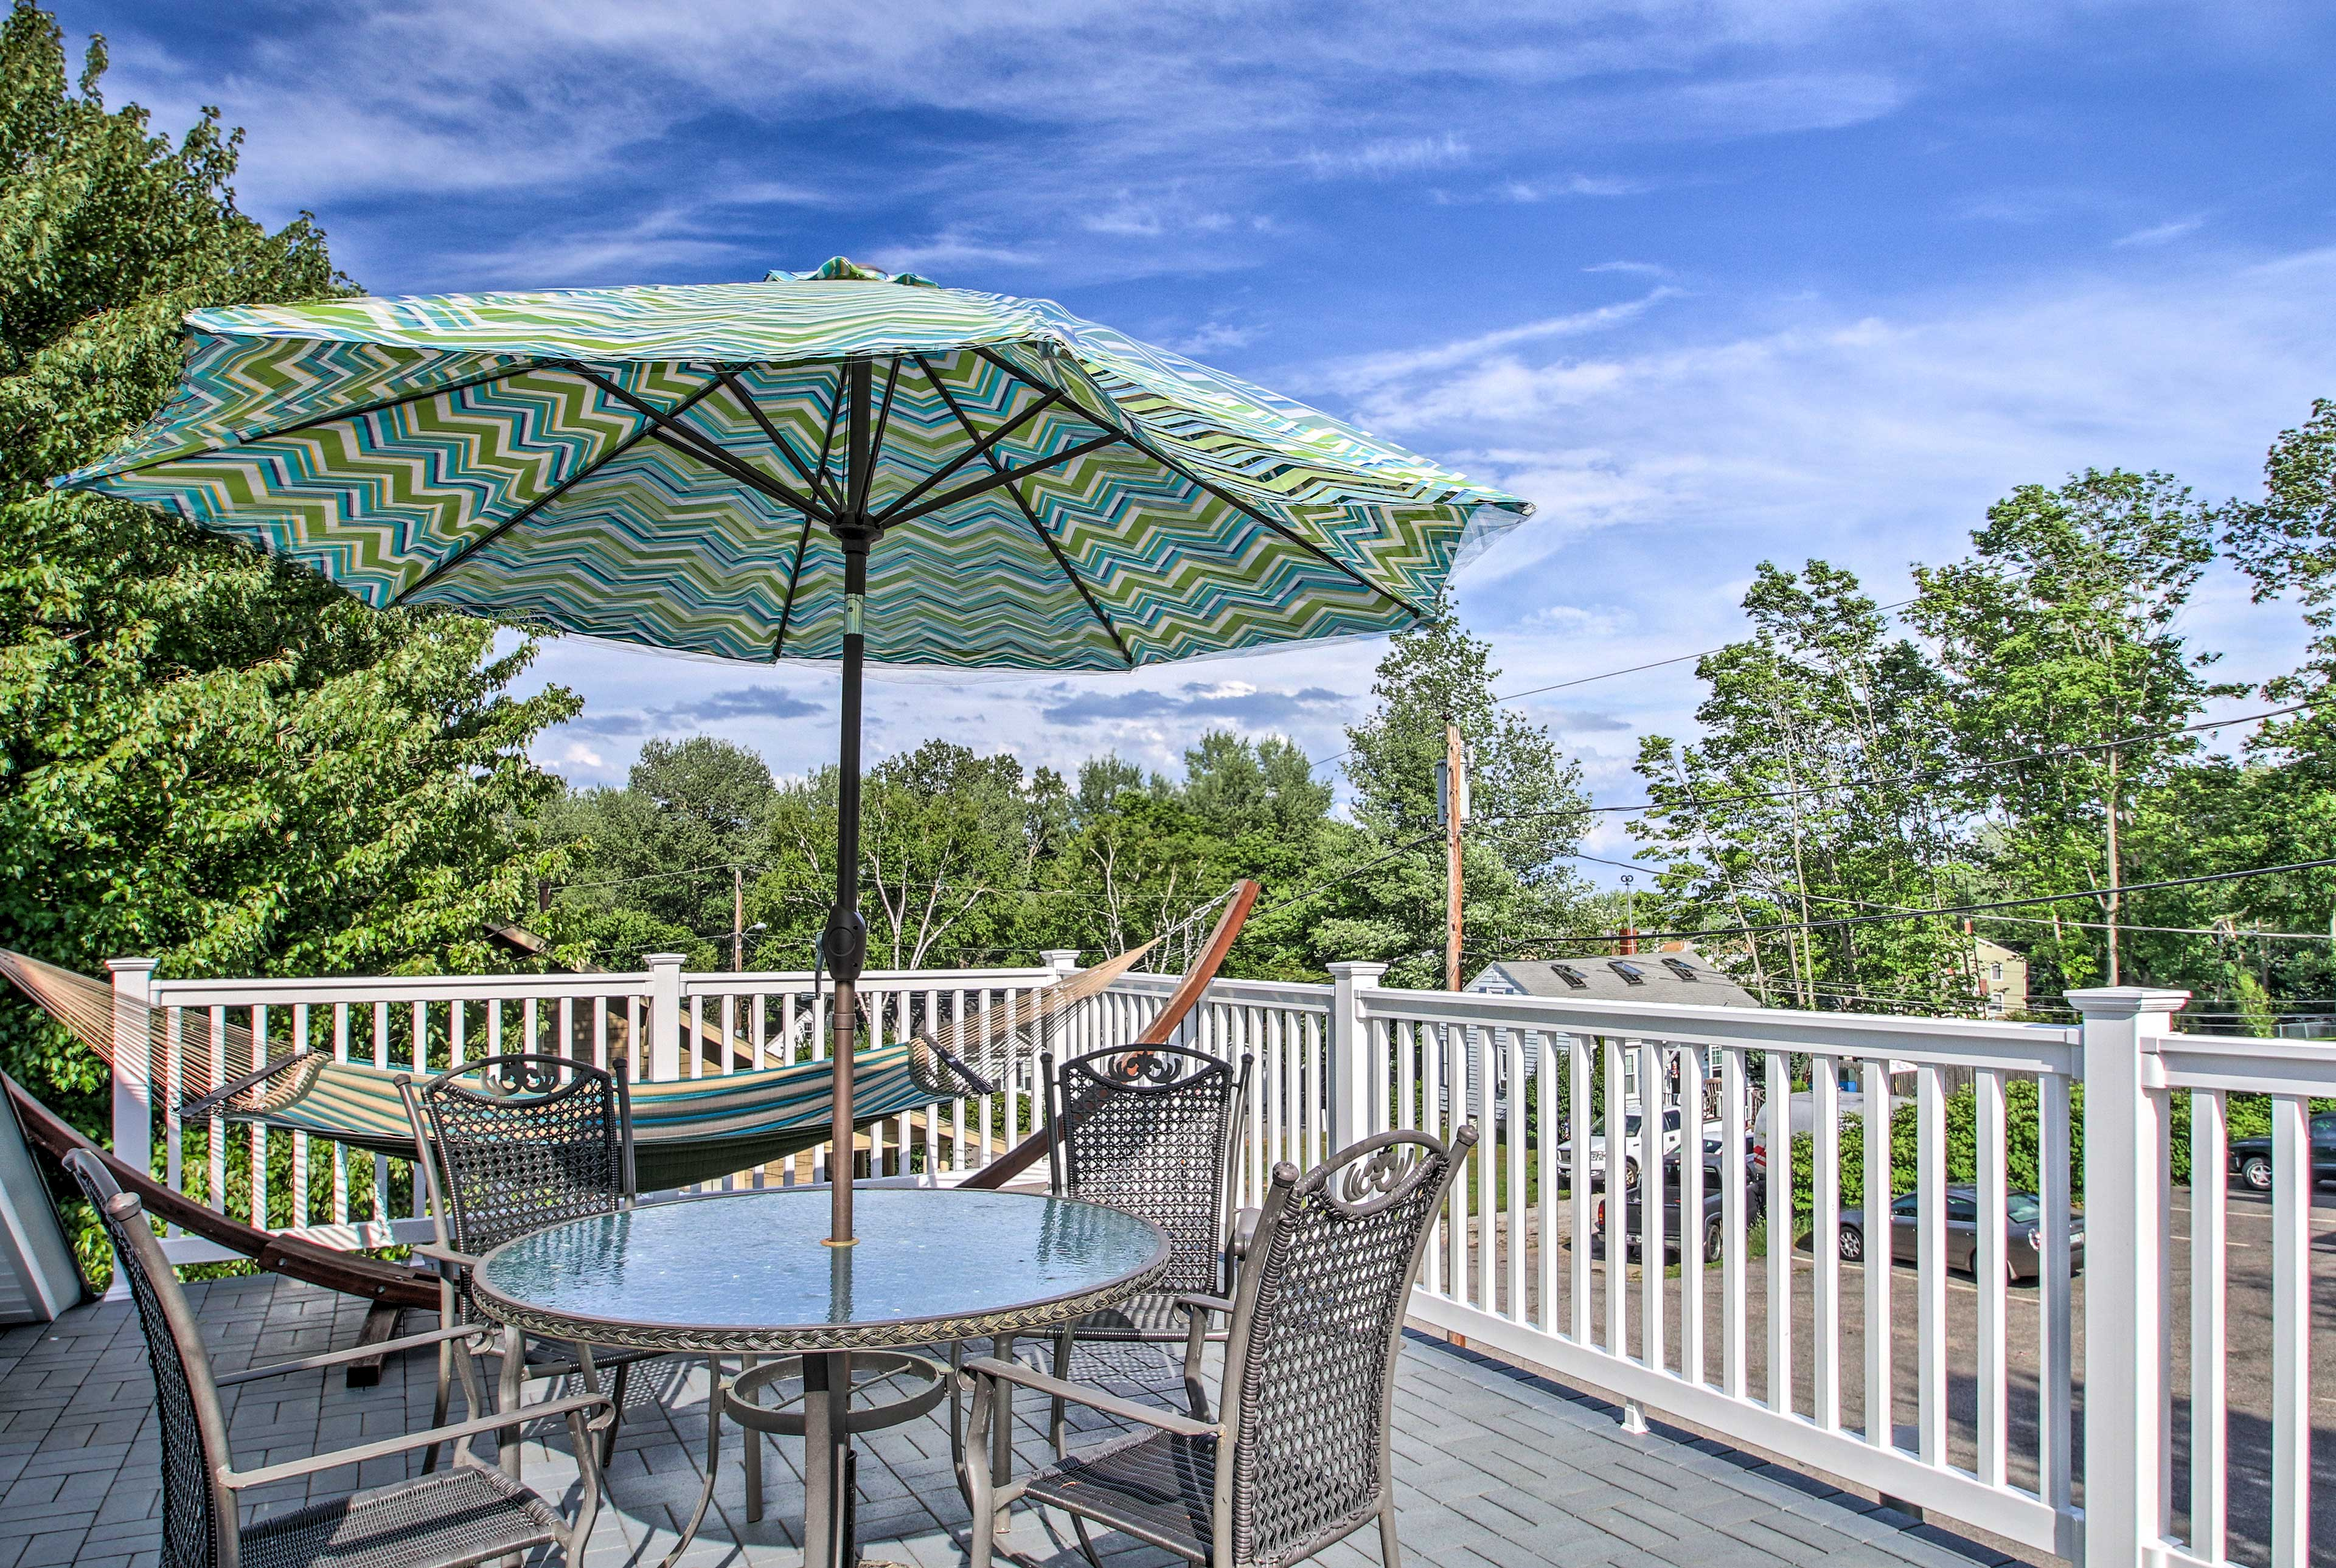 The home has 5 bedrooms, 2 bathrooms, and a rooftop deck!